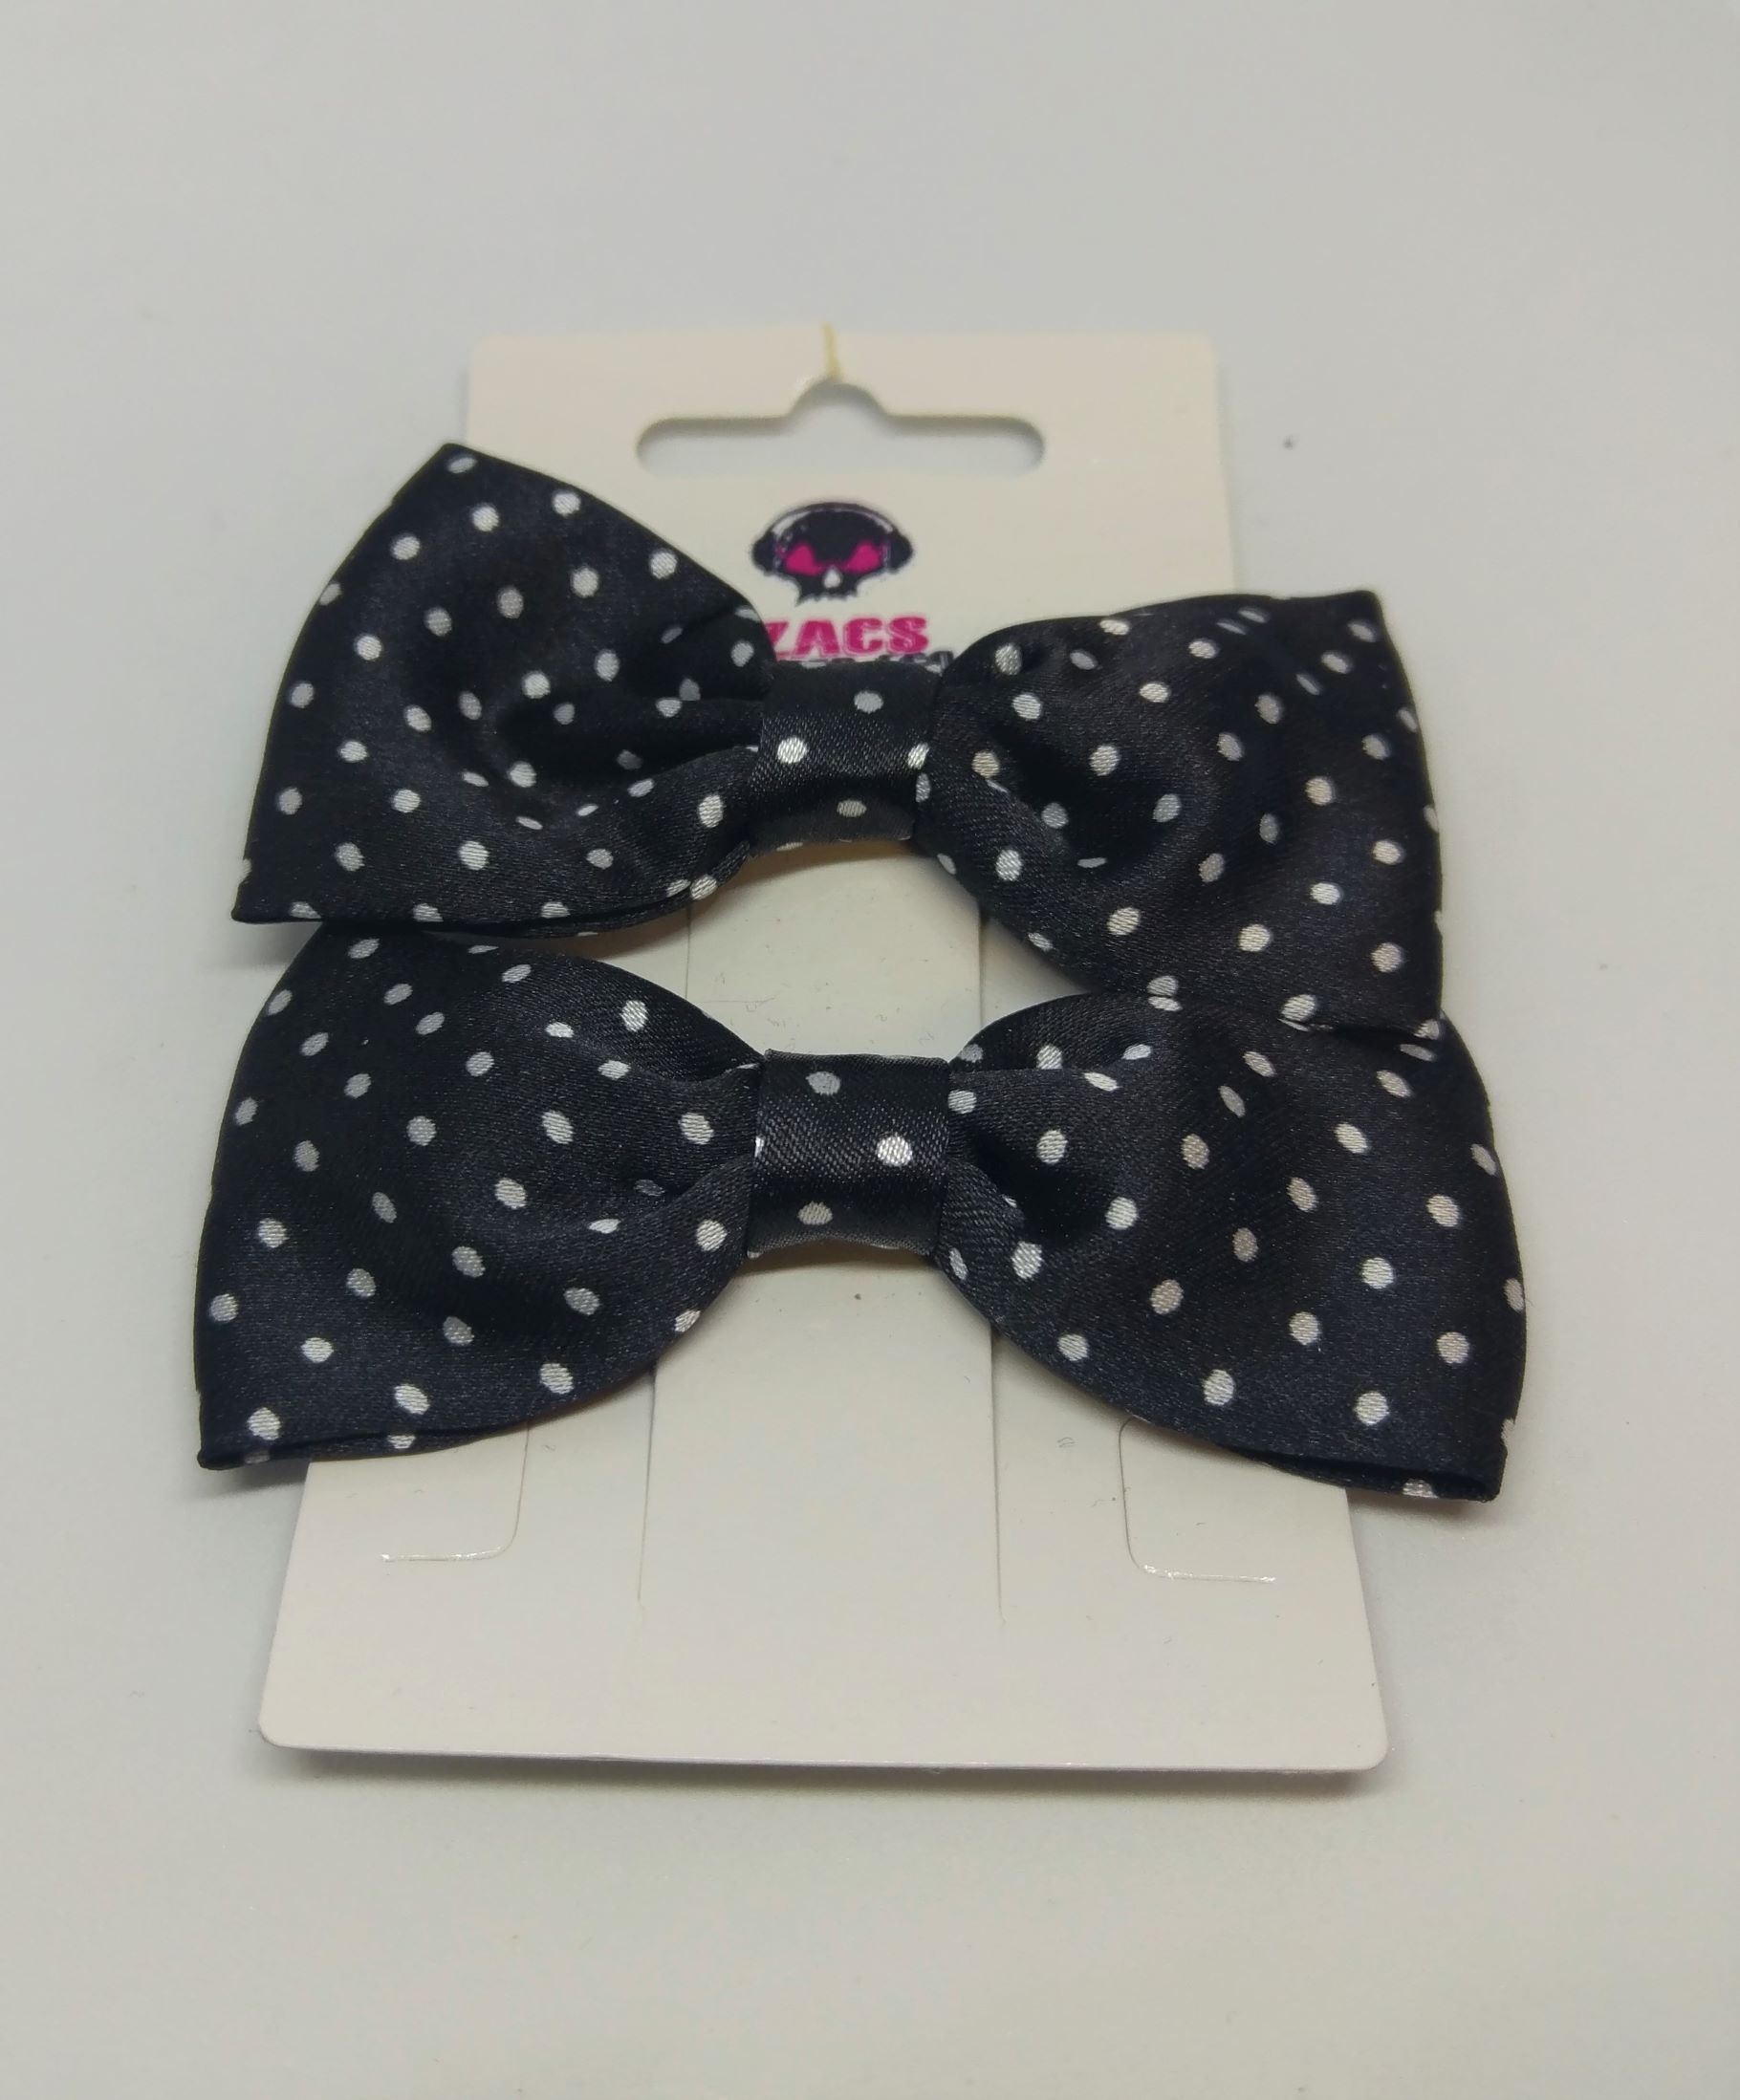 Black & White Polka Dot Hair Clips great for retro pin up and alternative wear.